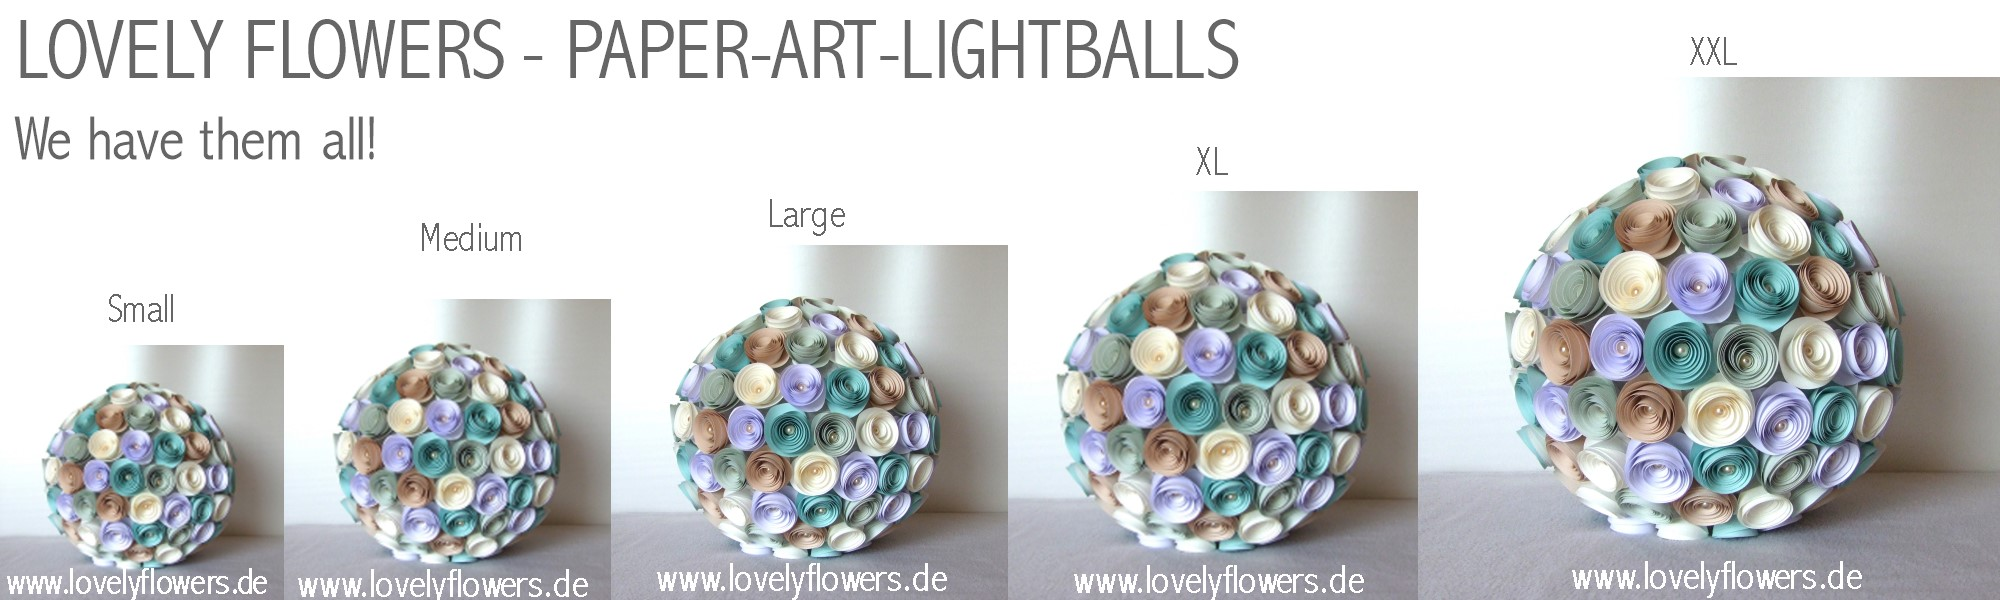 www.lovelyflowers.de - Paper Art Lampen gibt es in S - XL!